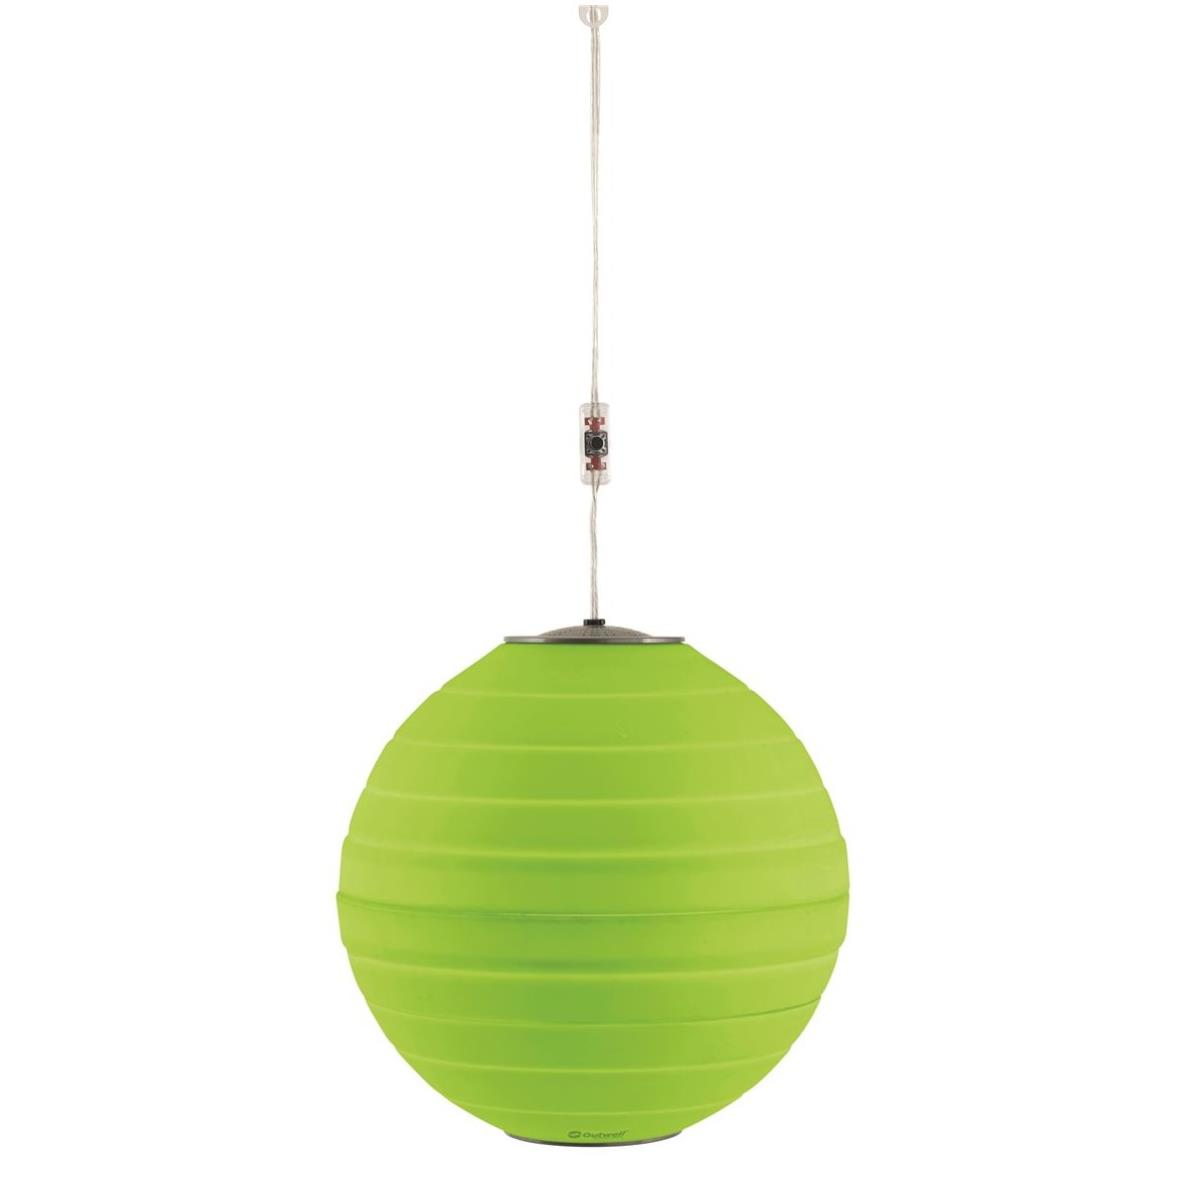 Outwell Mira Campinglampe lime green